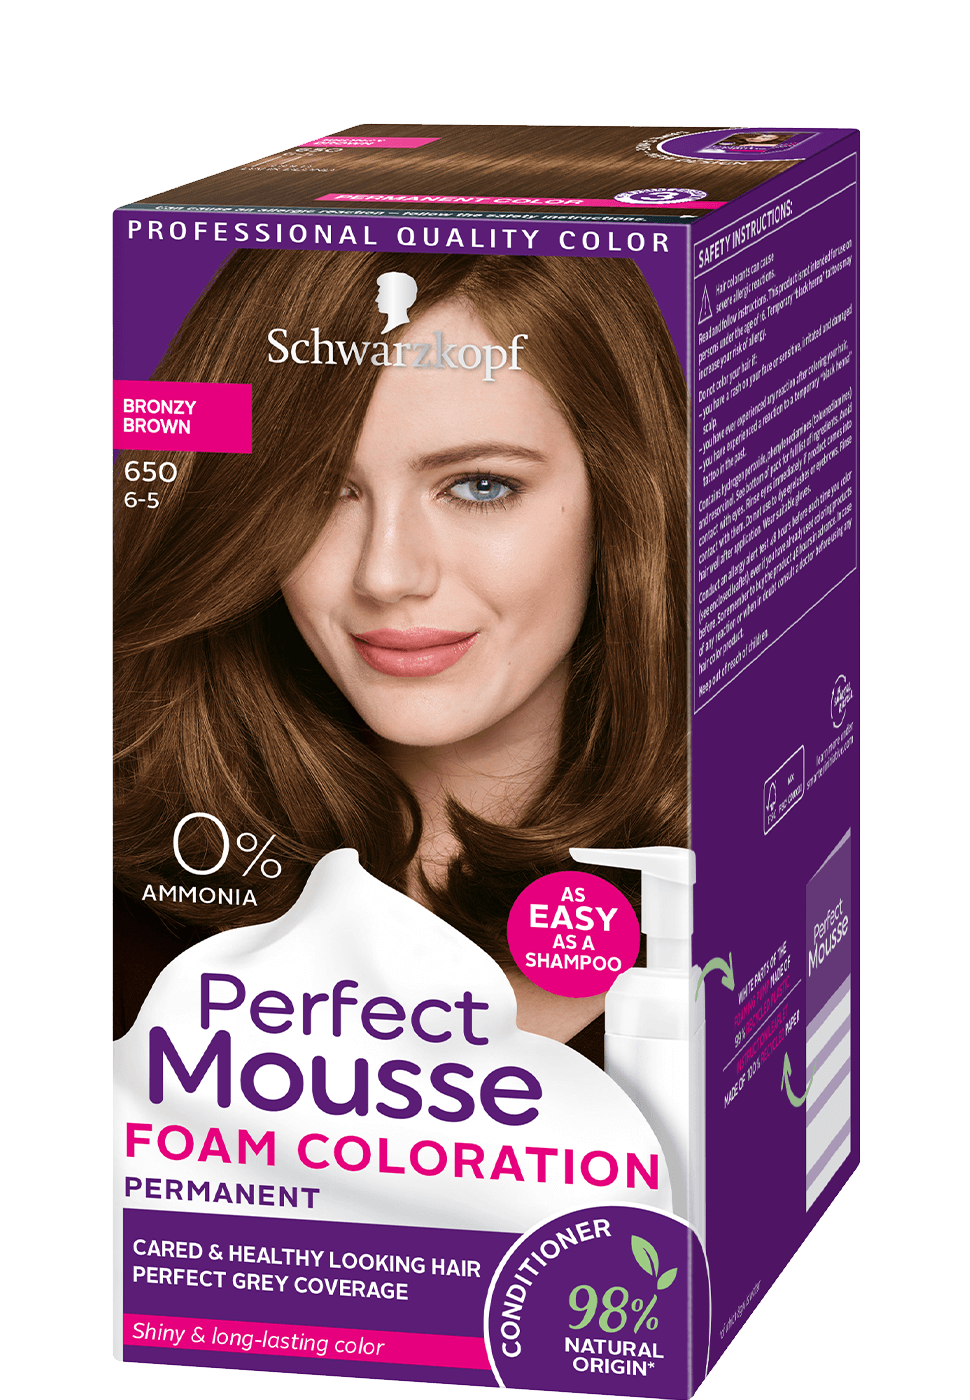 perfect_mousse_com_650_bronzy_brown_970x1400